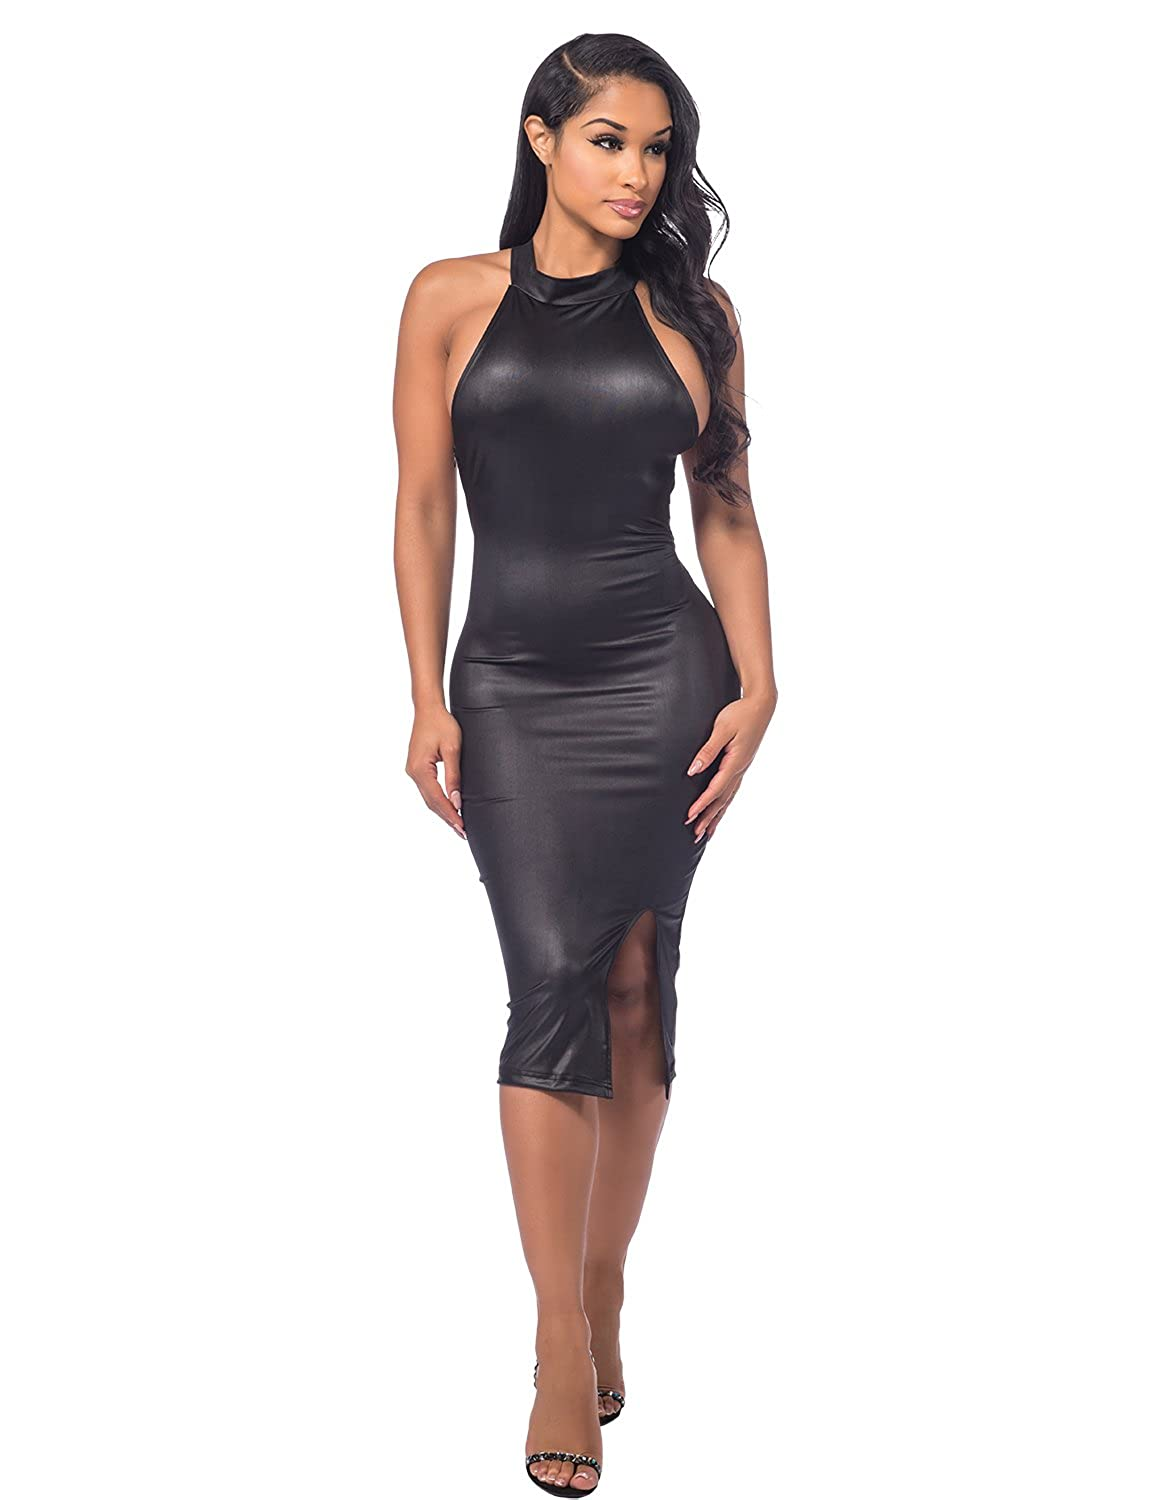 Sedrinuo Womens Pu Leather Sleeveless Bodycon Backless Party Bandage Dresses